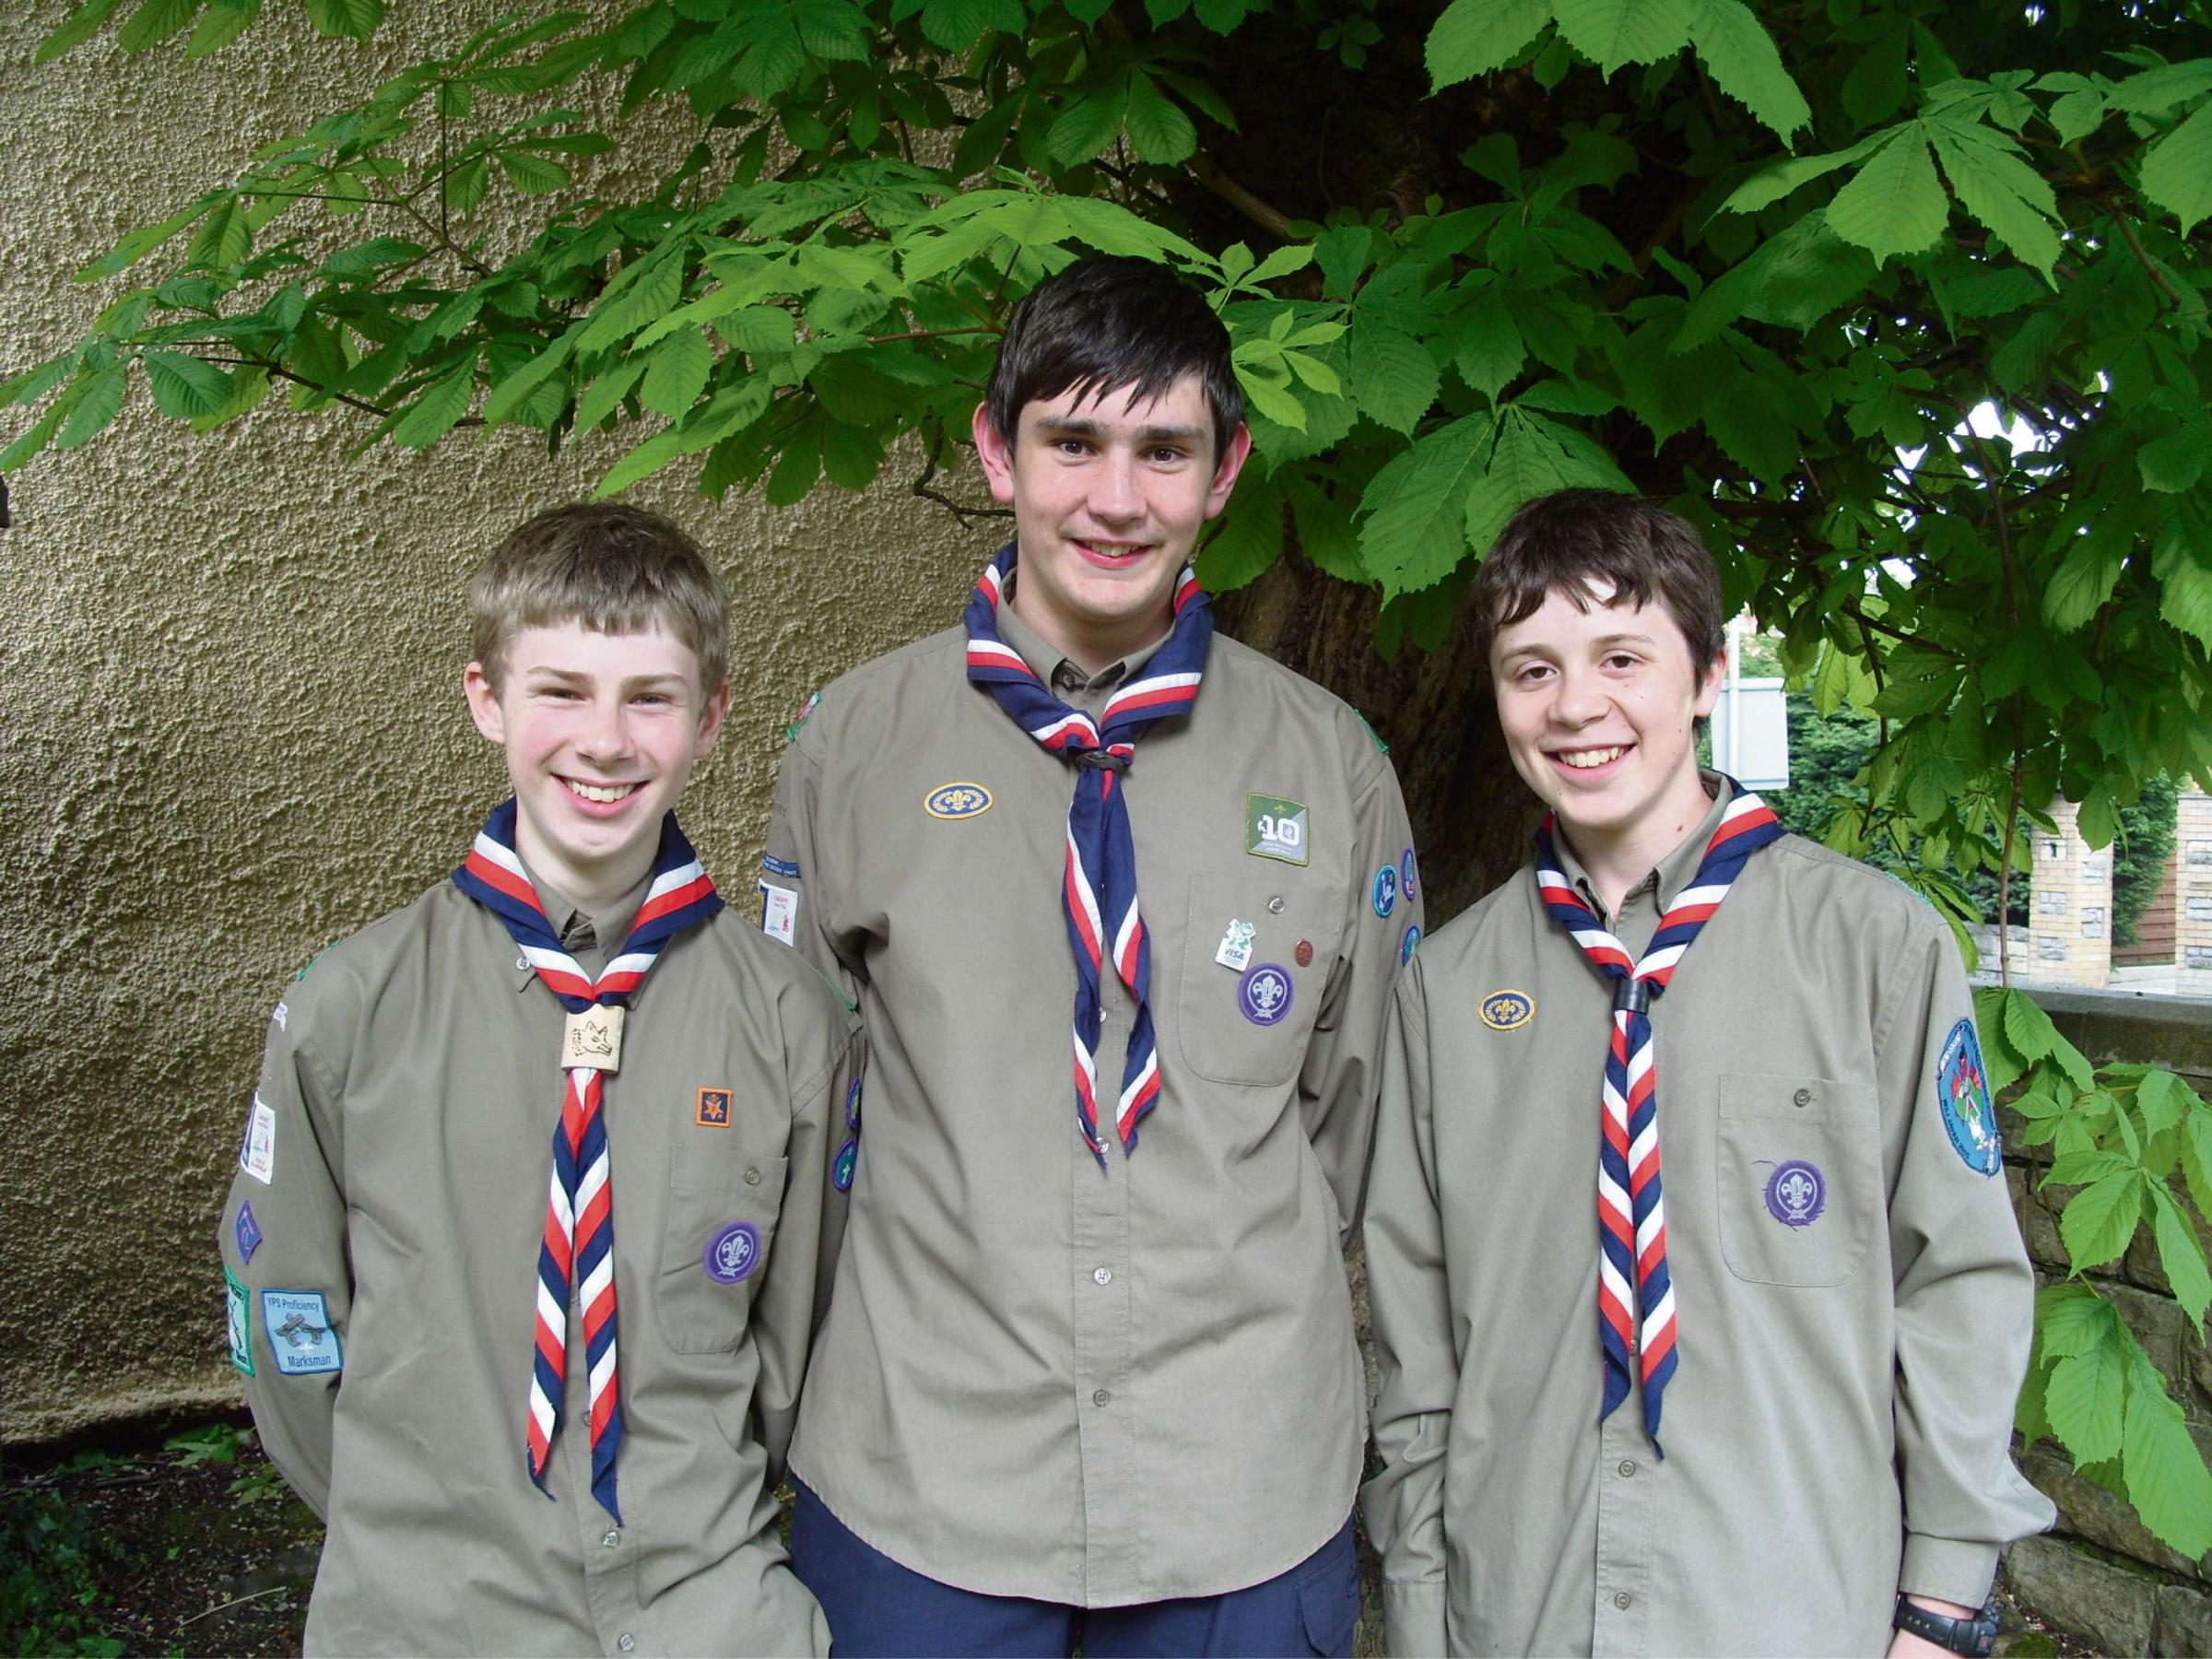 SCOUTS: (from left) Owain Havard,Thomas Mullett and Jonathan Wright are all set to attend the World Scout Jamboree in Japan in 2015